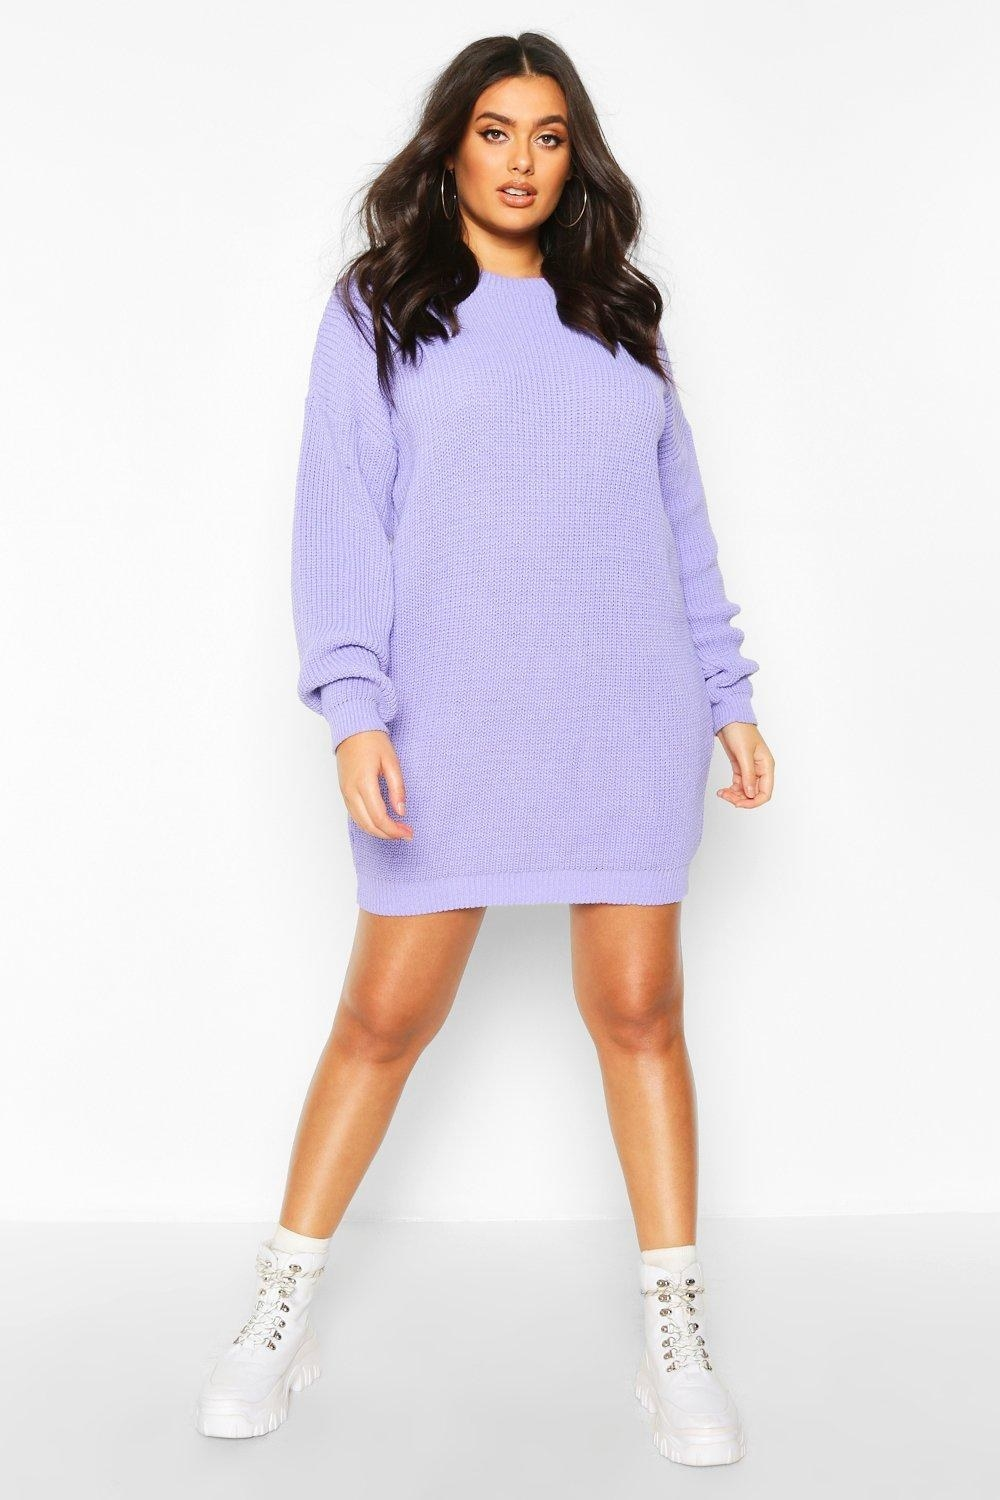 Model wearing the lavender sweater dress